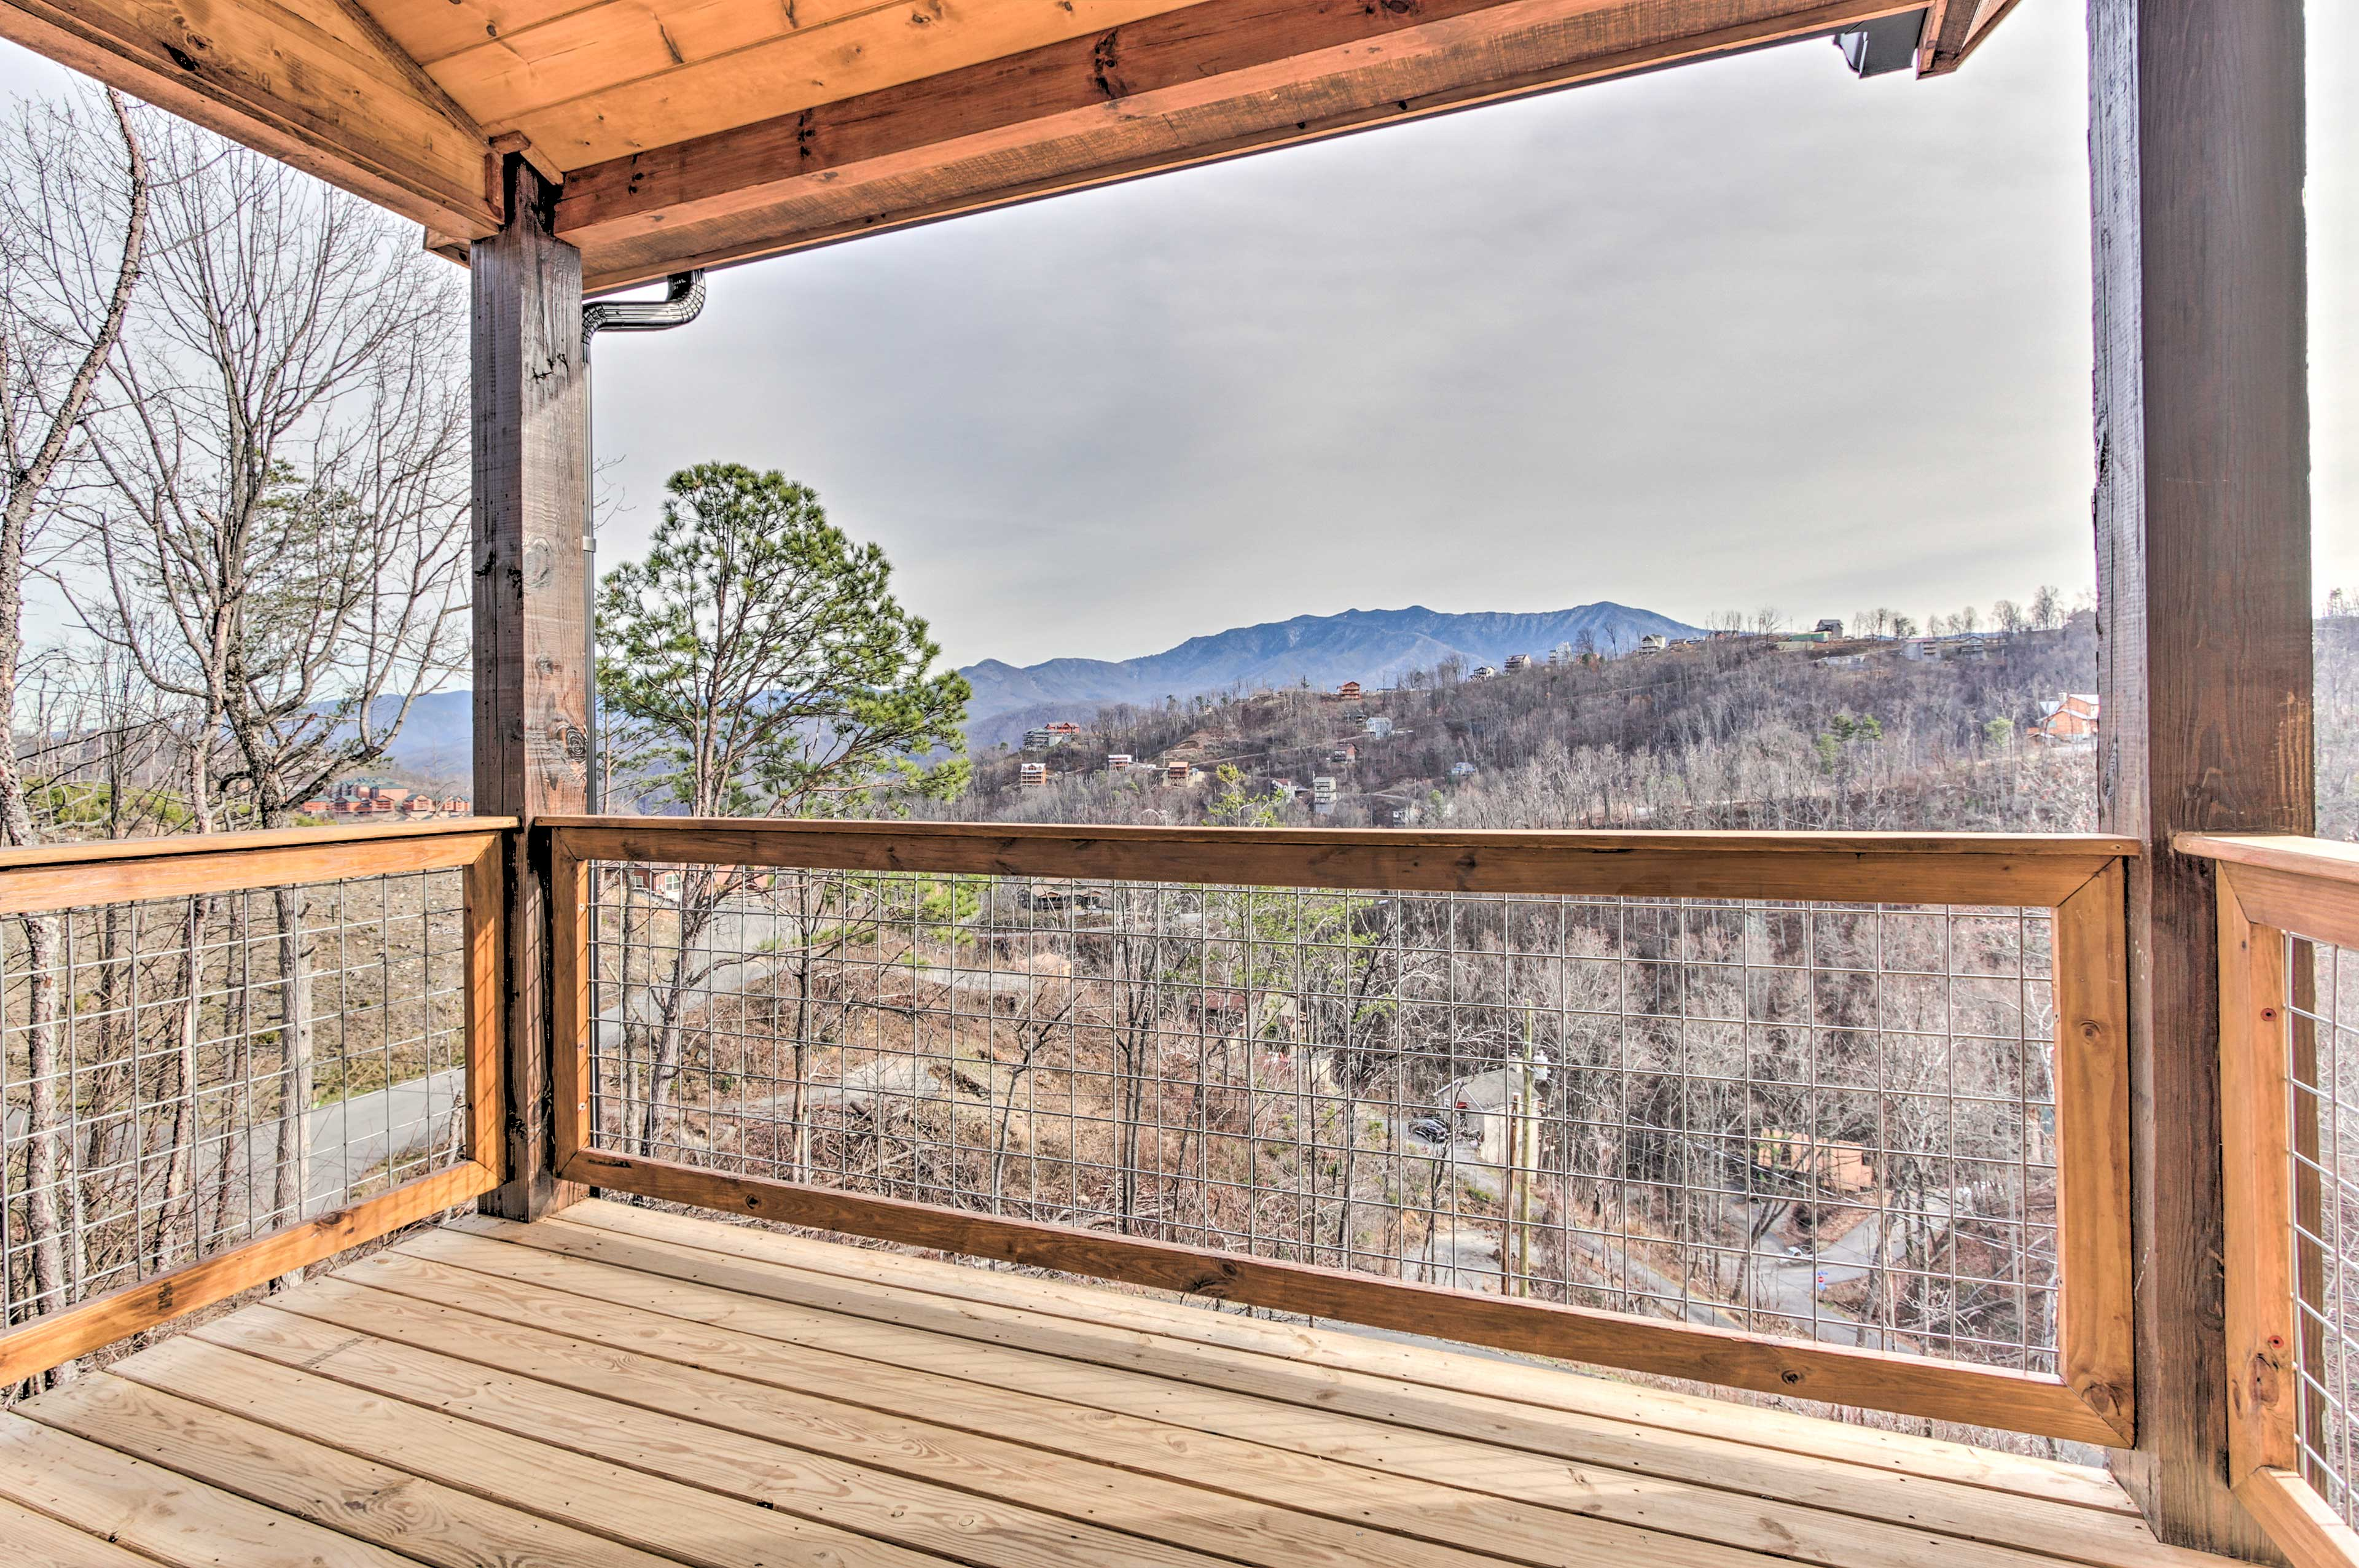 The master balcony lets you get great views of the area and plenty of privacy.